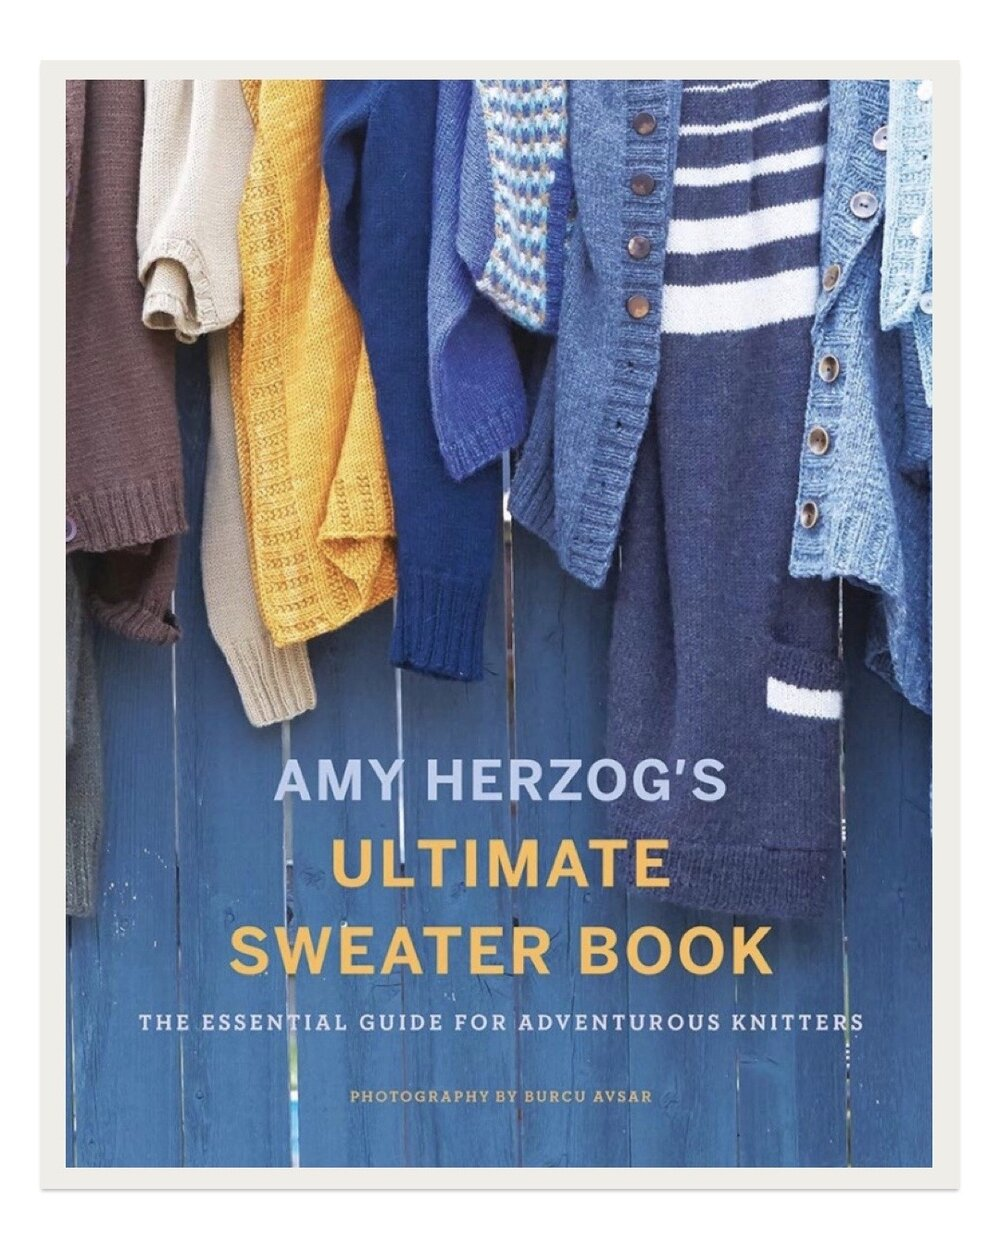 After taking a design class with Amy Herzog at Vogue Knitting Live in January, I knew I had to get her new book. This text is brilliant for those looking to design their own sweaters of all kinds. Full of helpful tips and charts, you'll gain confidence as a designer and have endless inspiration for what to make next.